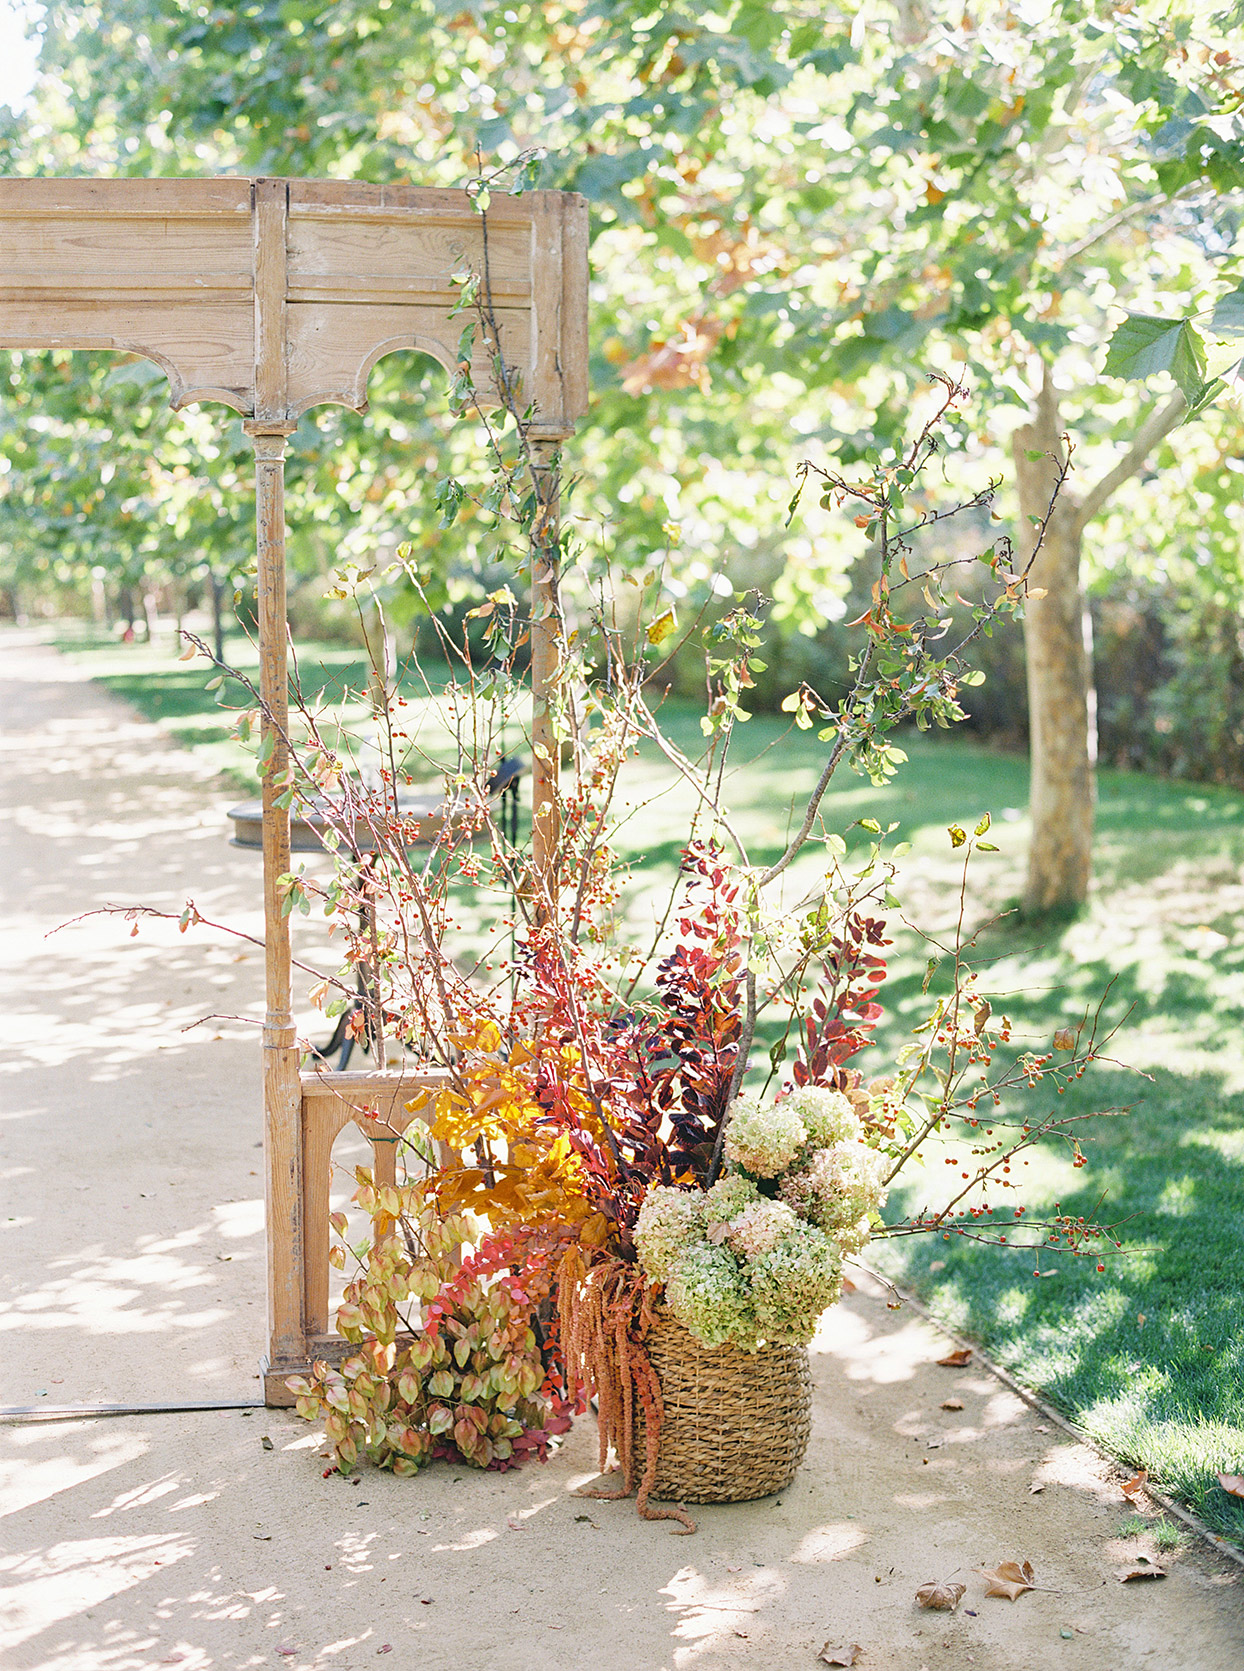 dried and rustic fall flowers against wooden ceremony backdrop